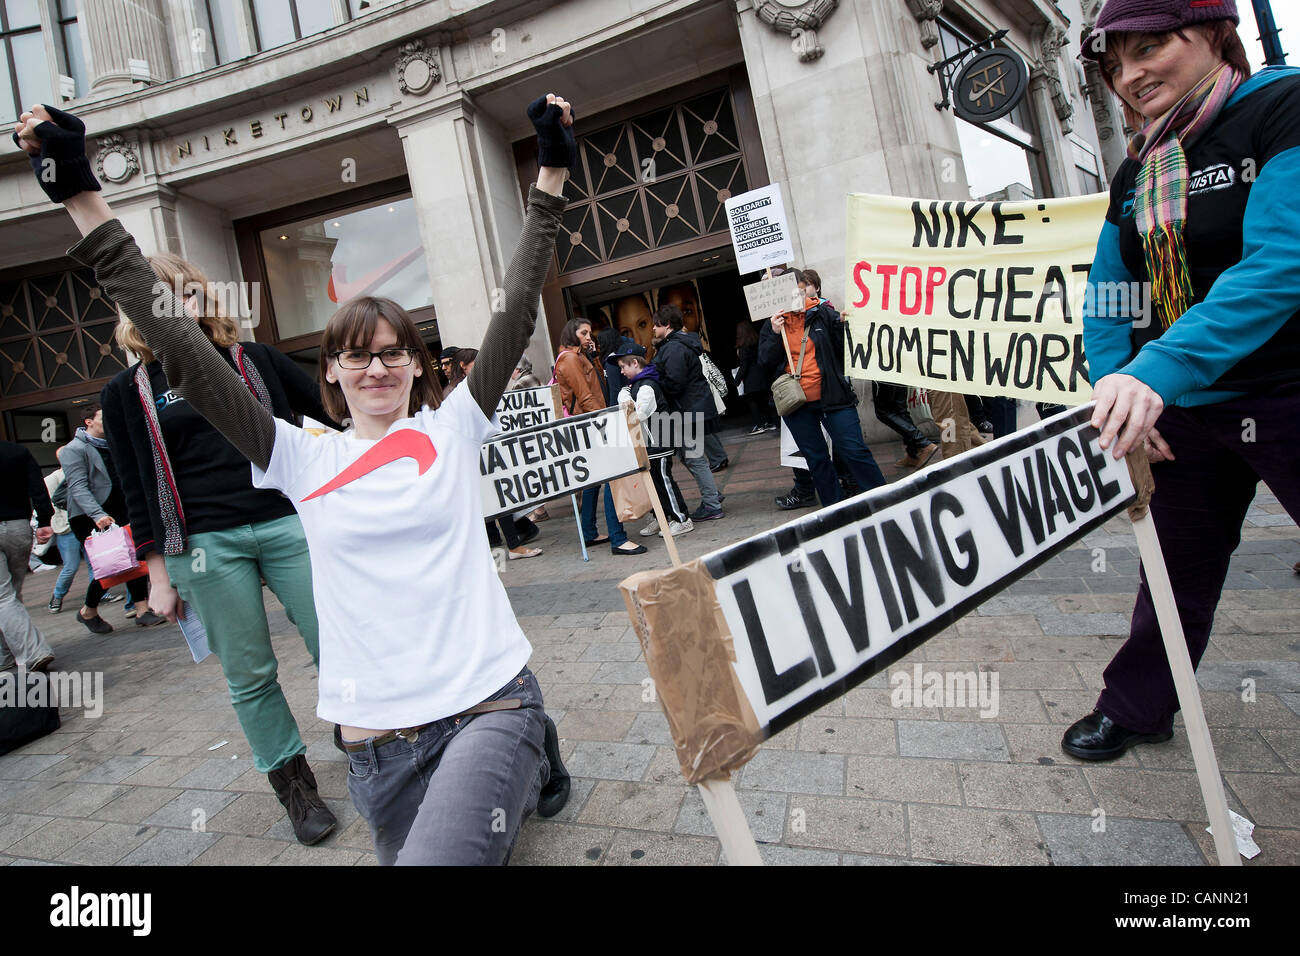 después de esto entregar Hermanos  Activists from UK Feminista protest against the exploitation of Stock Photo  - Alamy